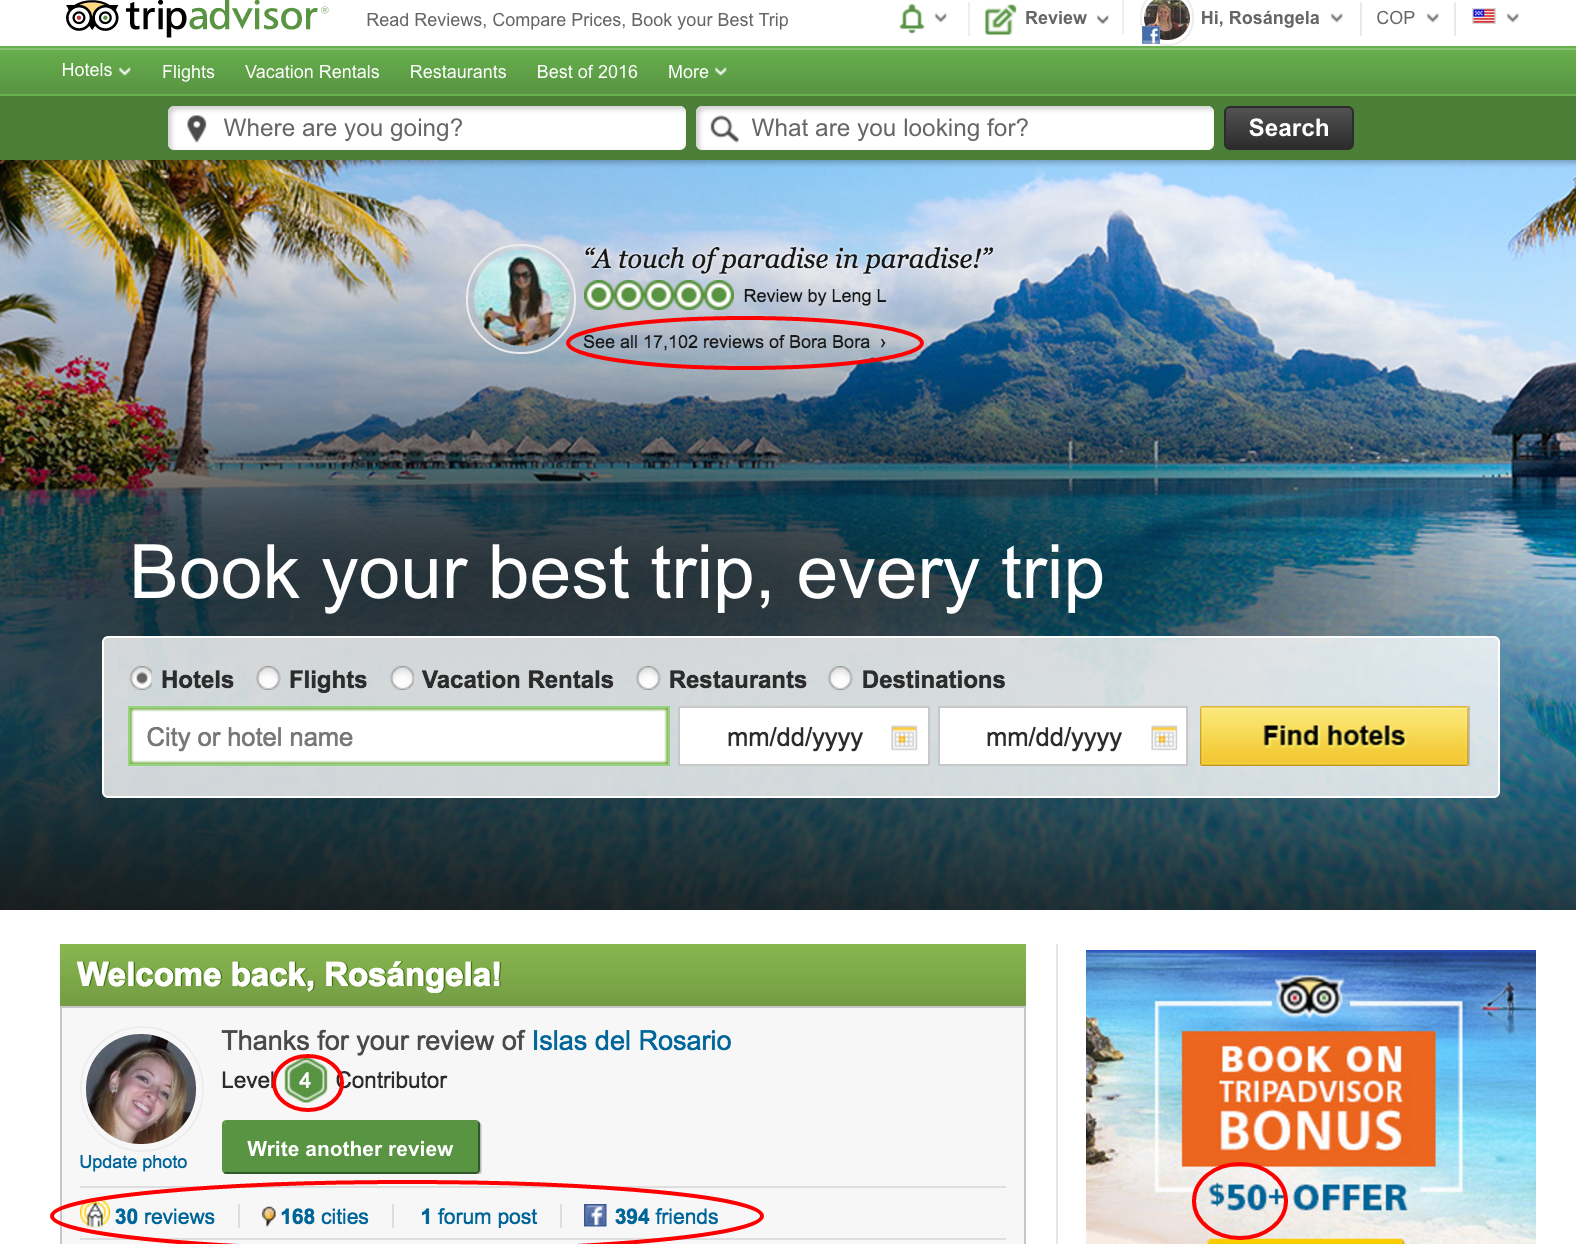 TripAdvisor Read Reviews Compare Prices Book